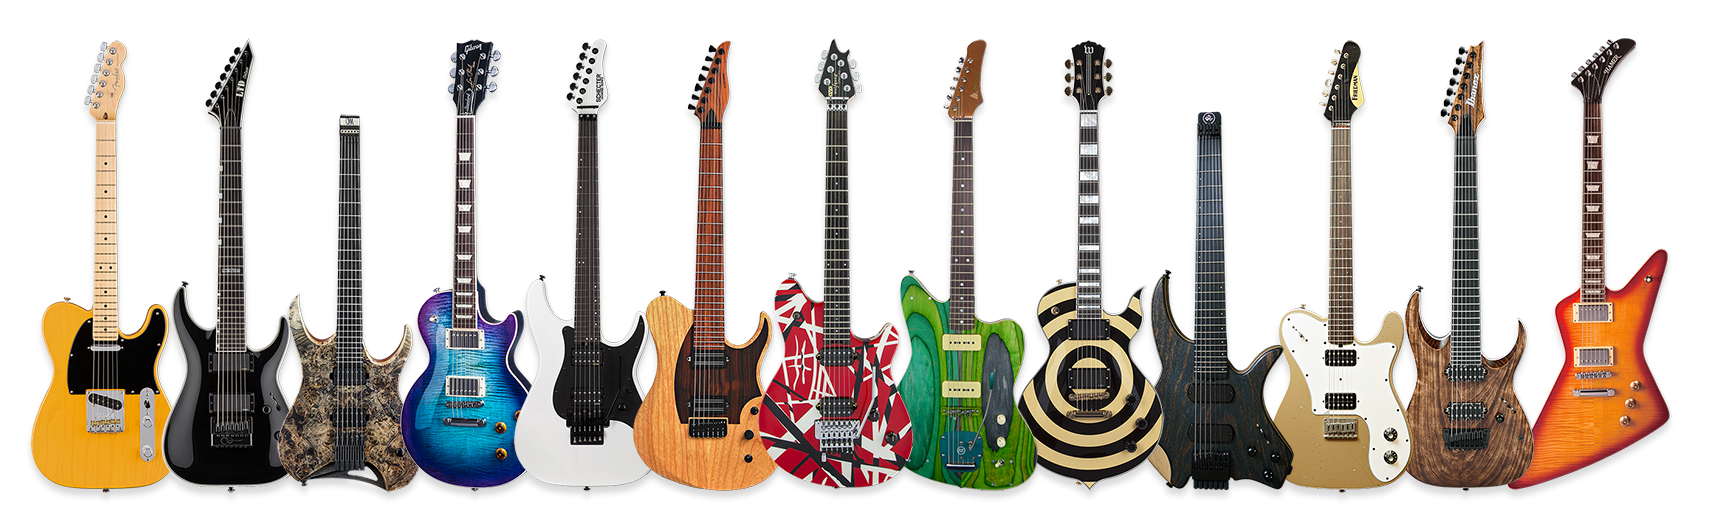 Guitar of theYear 2017